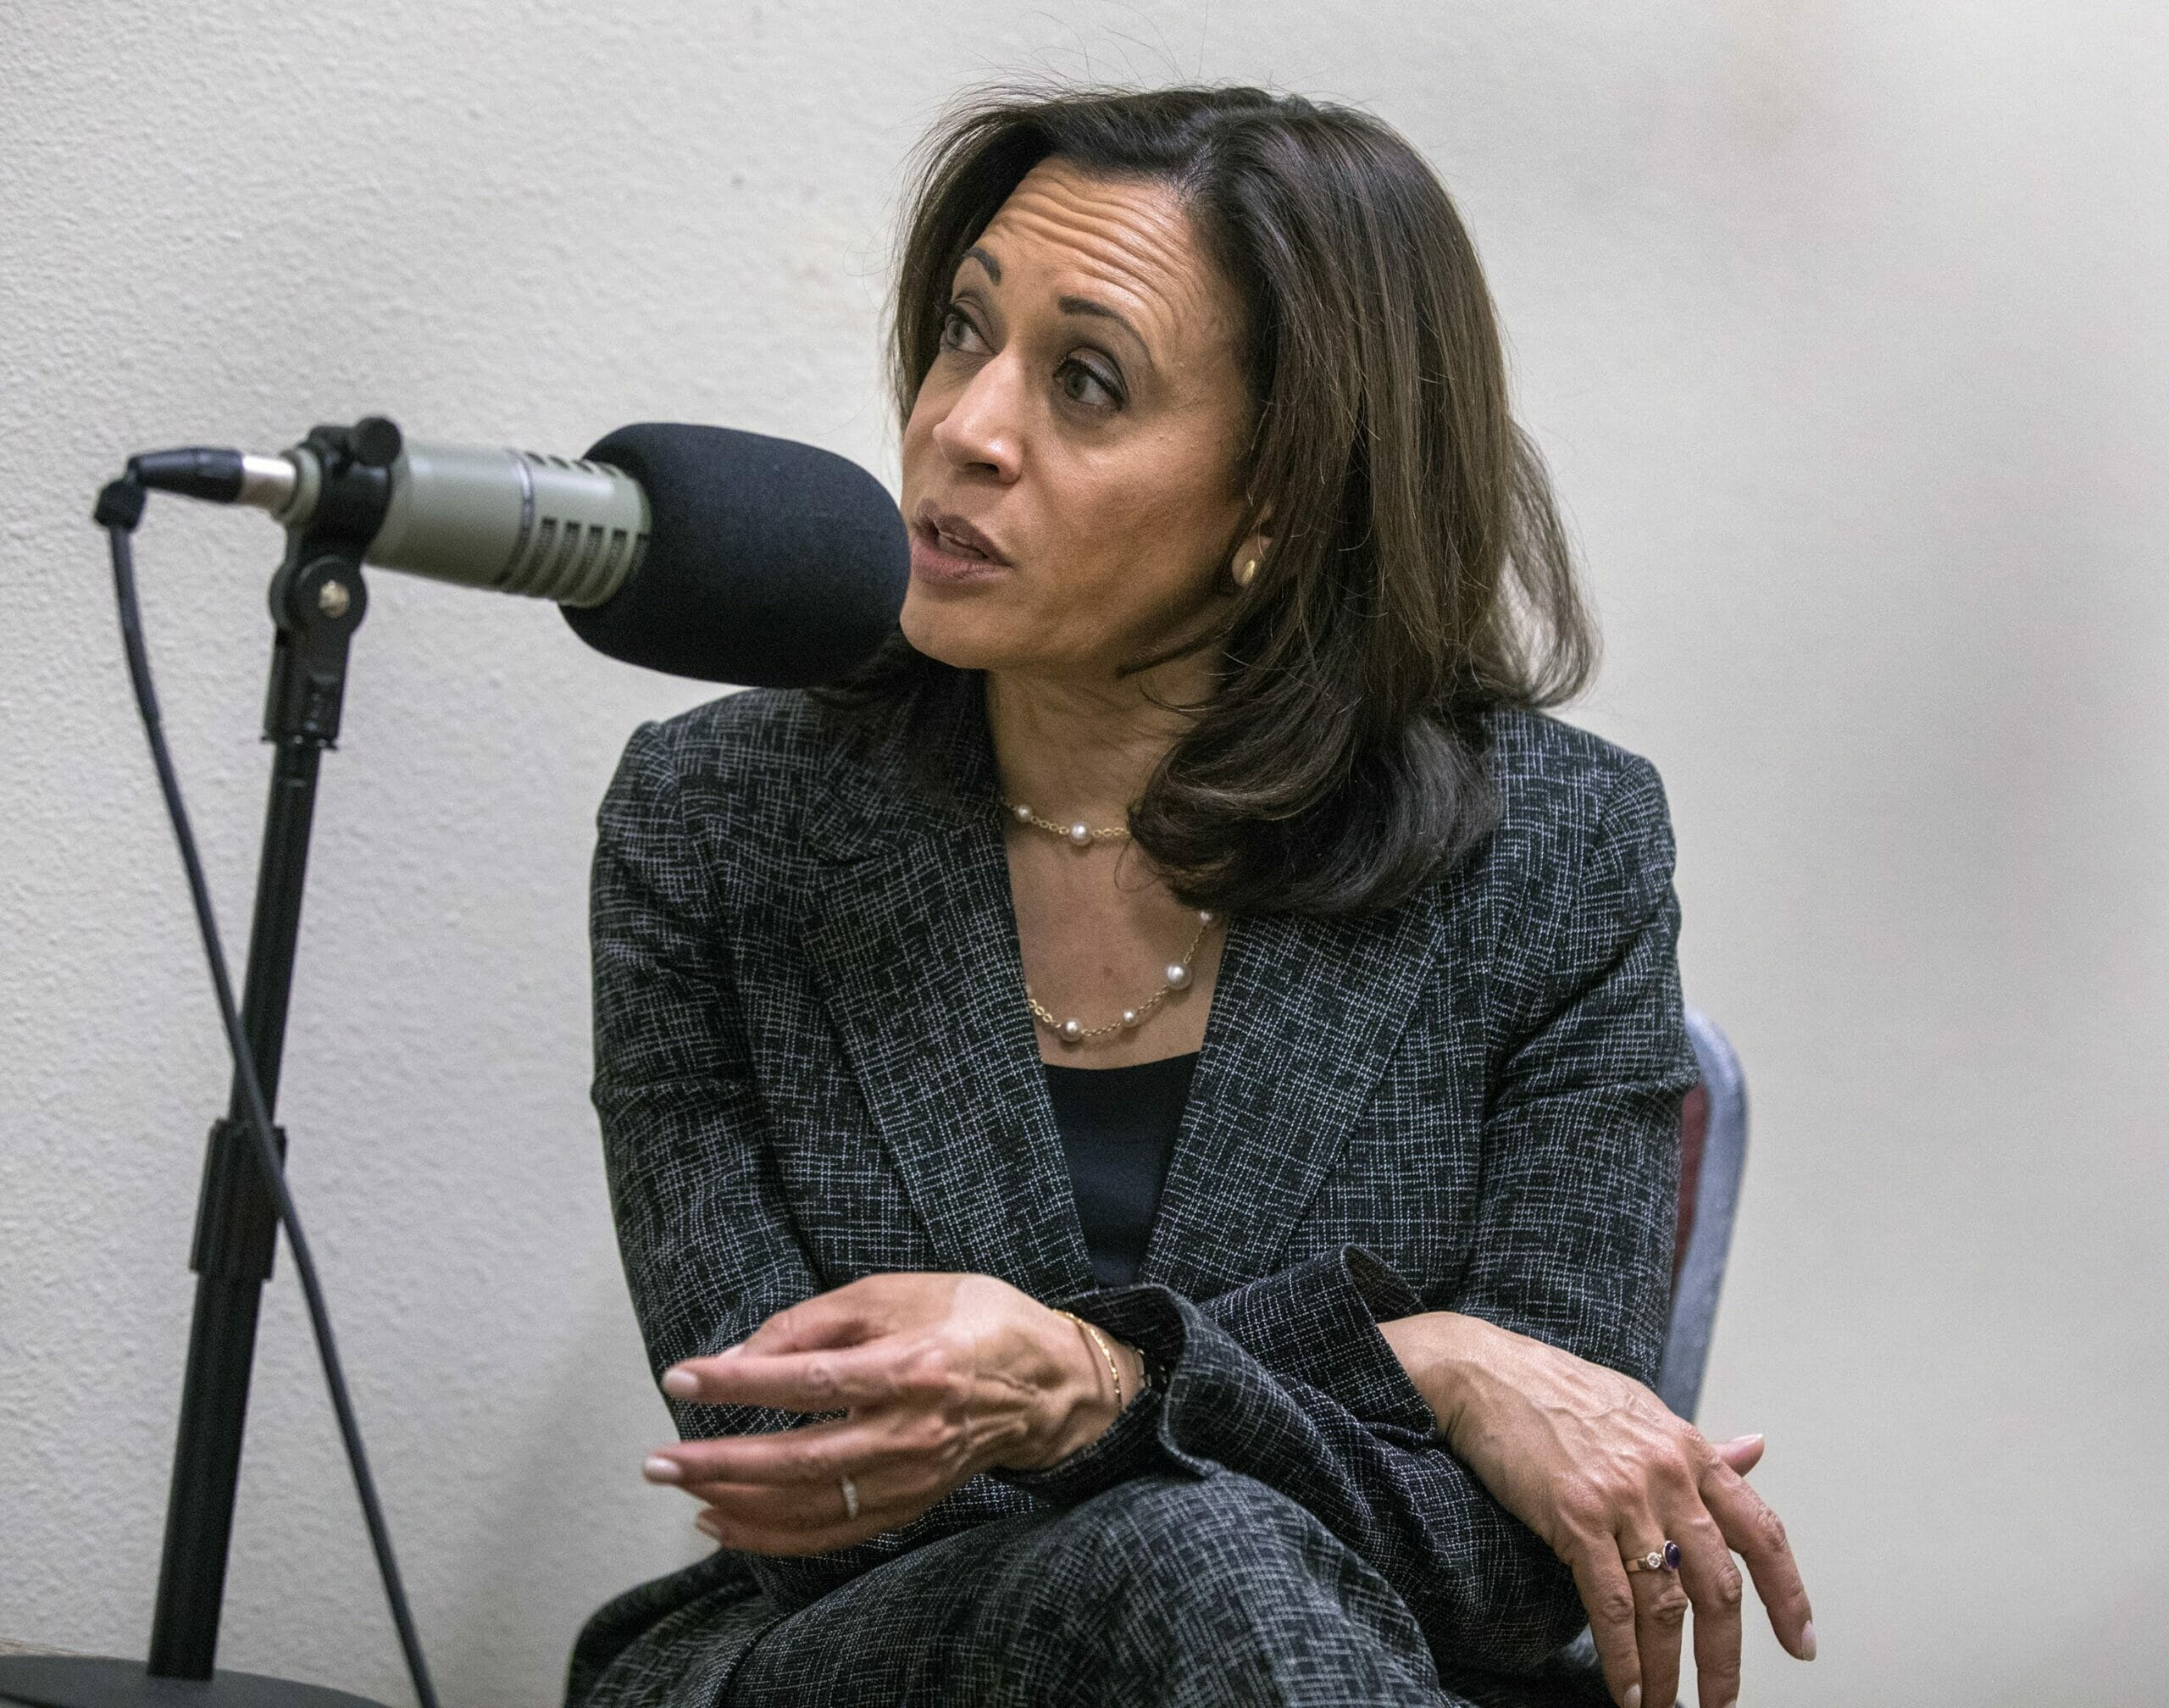 Kamala Harris in a grey suit seated at a microphone